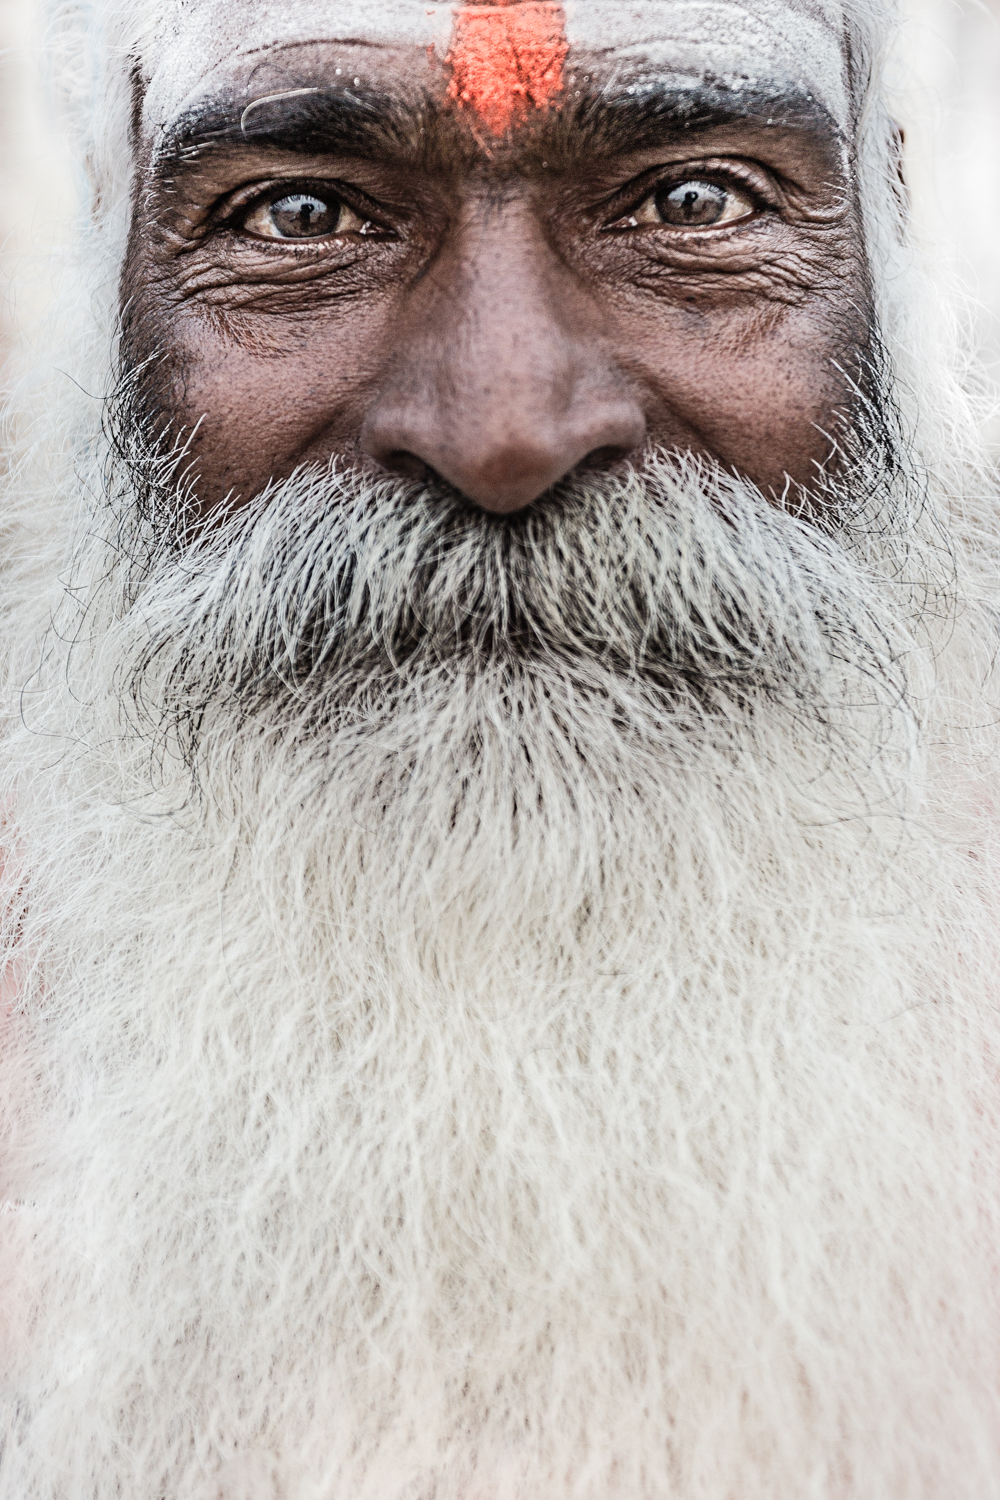 """A   sādhu   is a Hindu ascetic commonly called  baba ( meaning elder such as father, grandfather or uncle) or """"baba-ji"""" (with a suffix for added endearment) by common people. They are essentially homeless and usually nomadic. Becoming a sādhu involves a guru deciding that a sisya (the person desiring to become a  sādhu)  ready to take sannyasa, the life state of renunciation in which a person — usually after family life — renounces worldly and materialistic pursuits and dedicate their lives to the attainment of freedom from   saṃsāra  , the cycle of death and rebirth, by attaining enlightenment. Sadhus are considered dead unto themselves and are legally dead to the state of India. Most live off of the charitable contributions of lay people."""